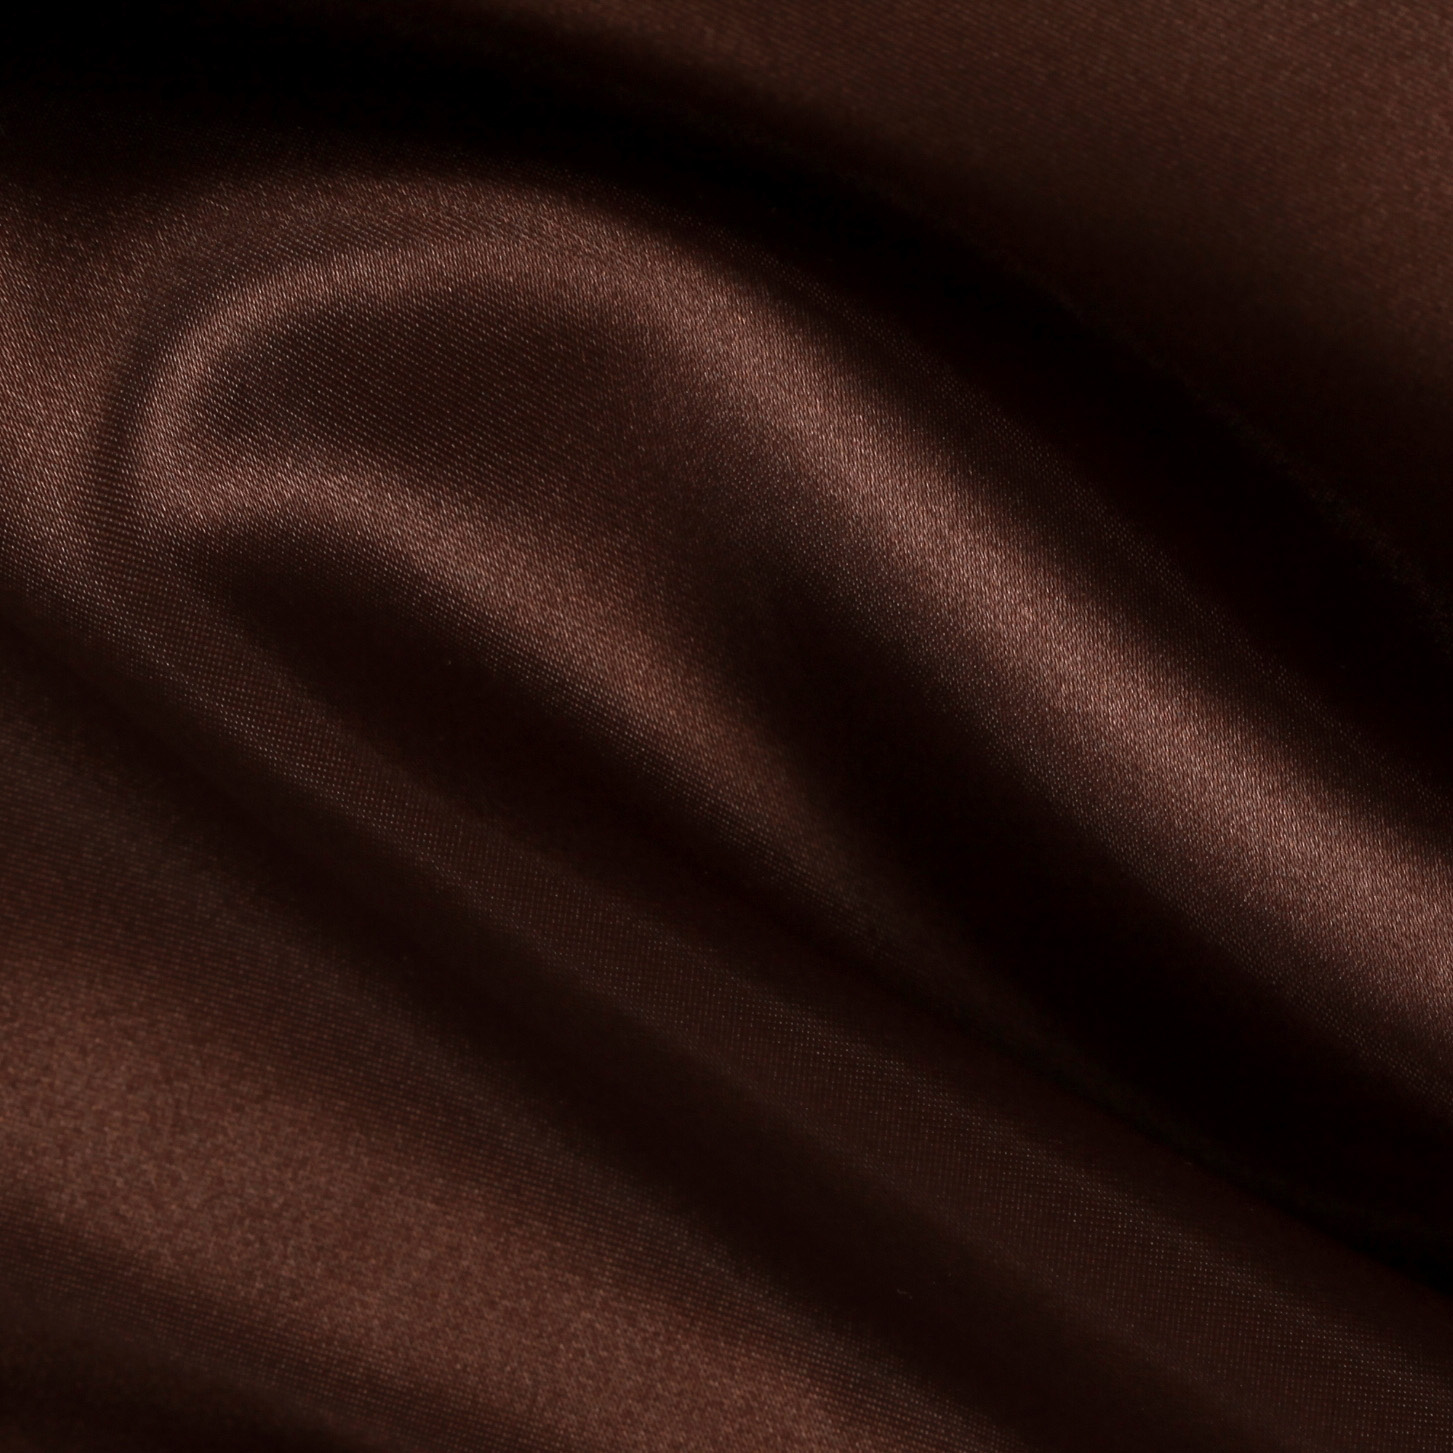 Sweetheart Satin Brown Fabric